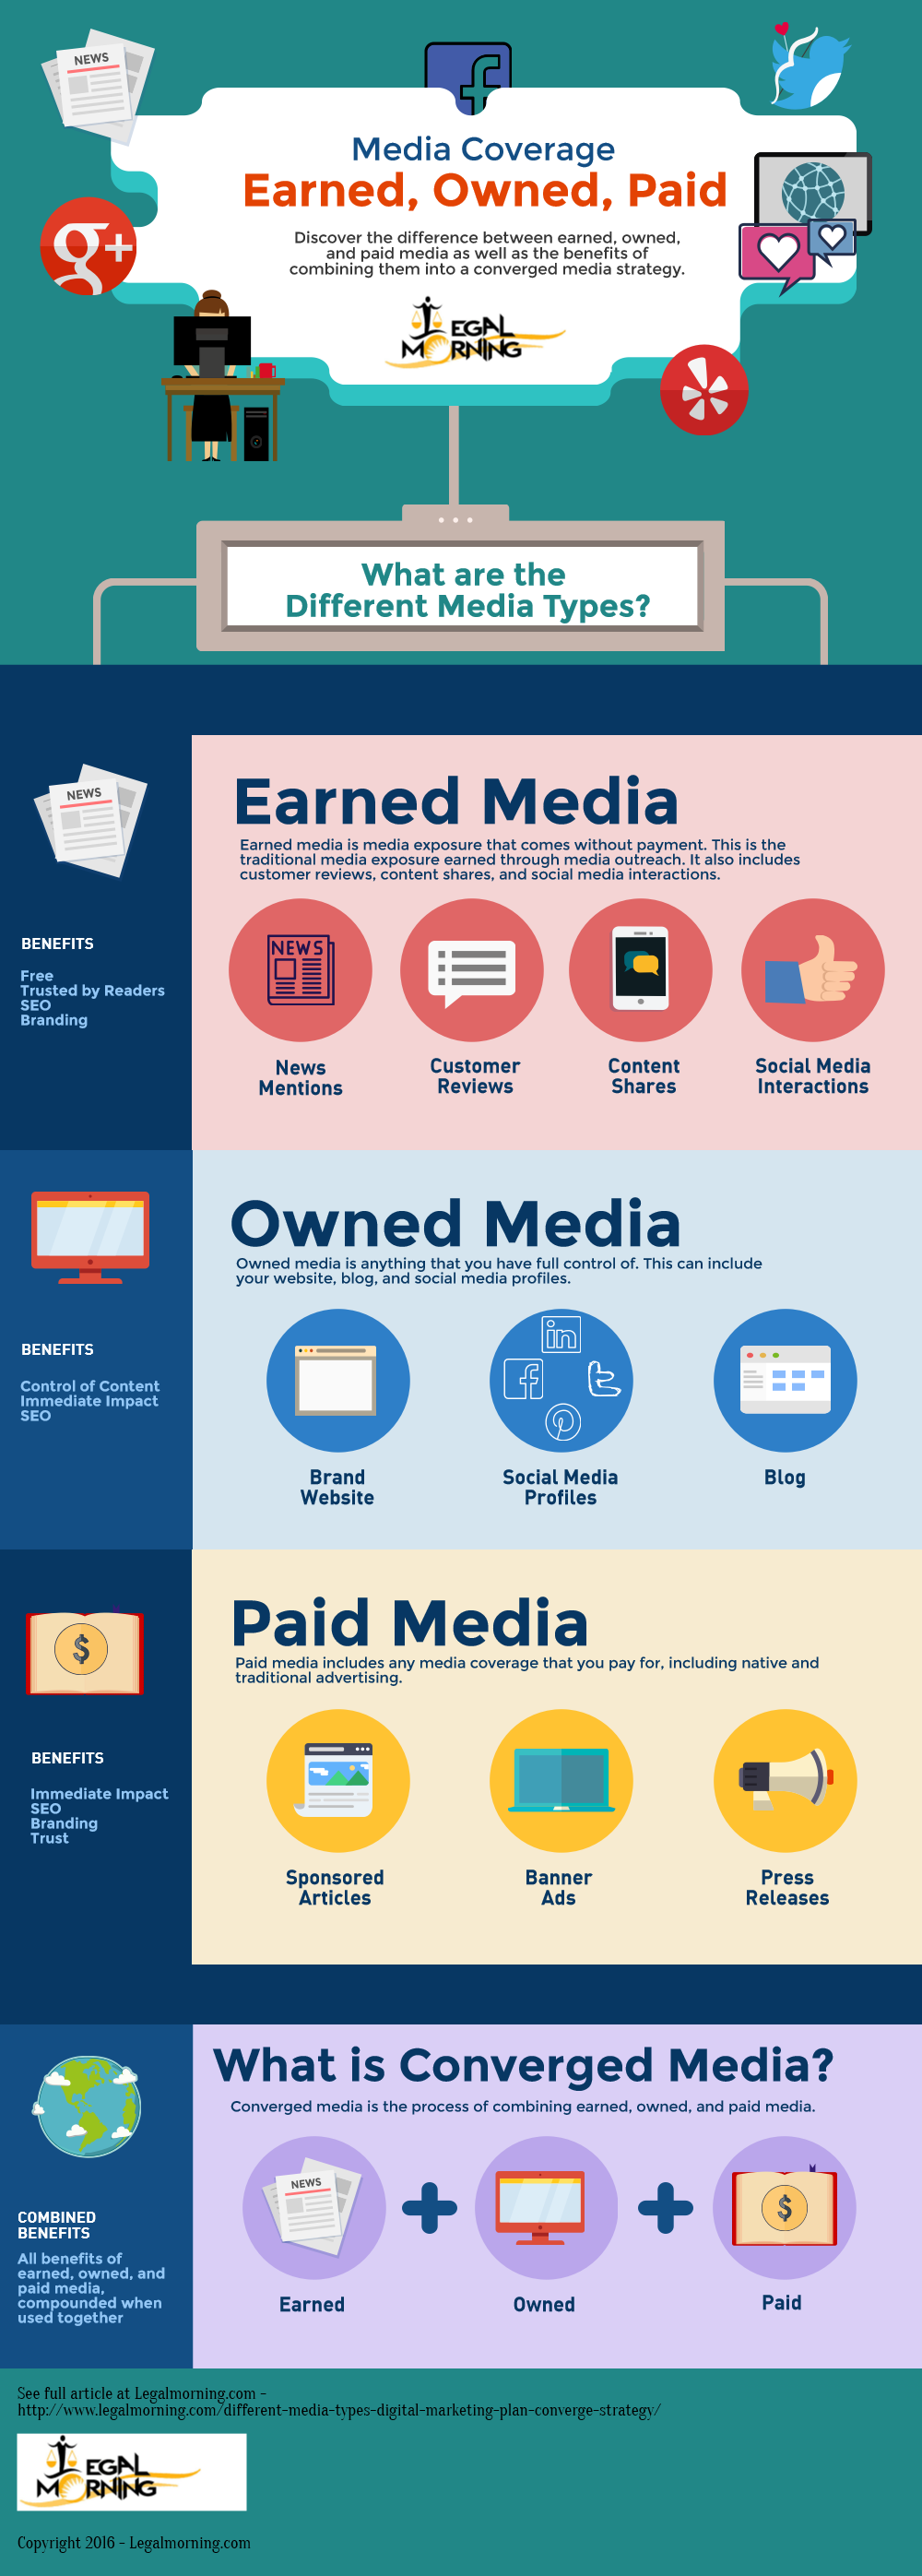 Earned, Owned, Paid Media Infographic